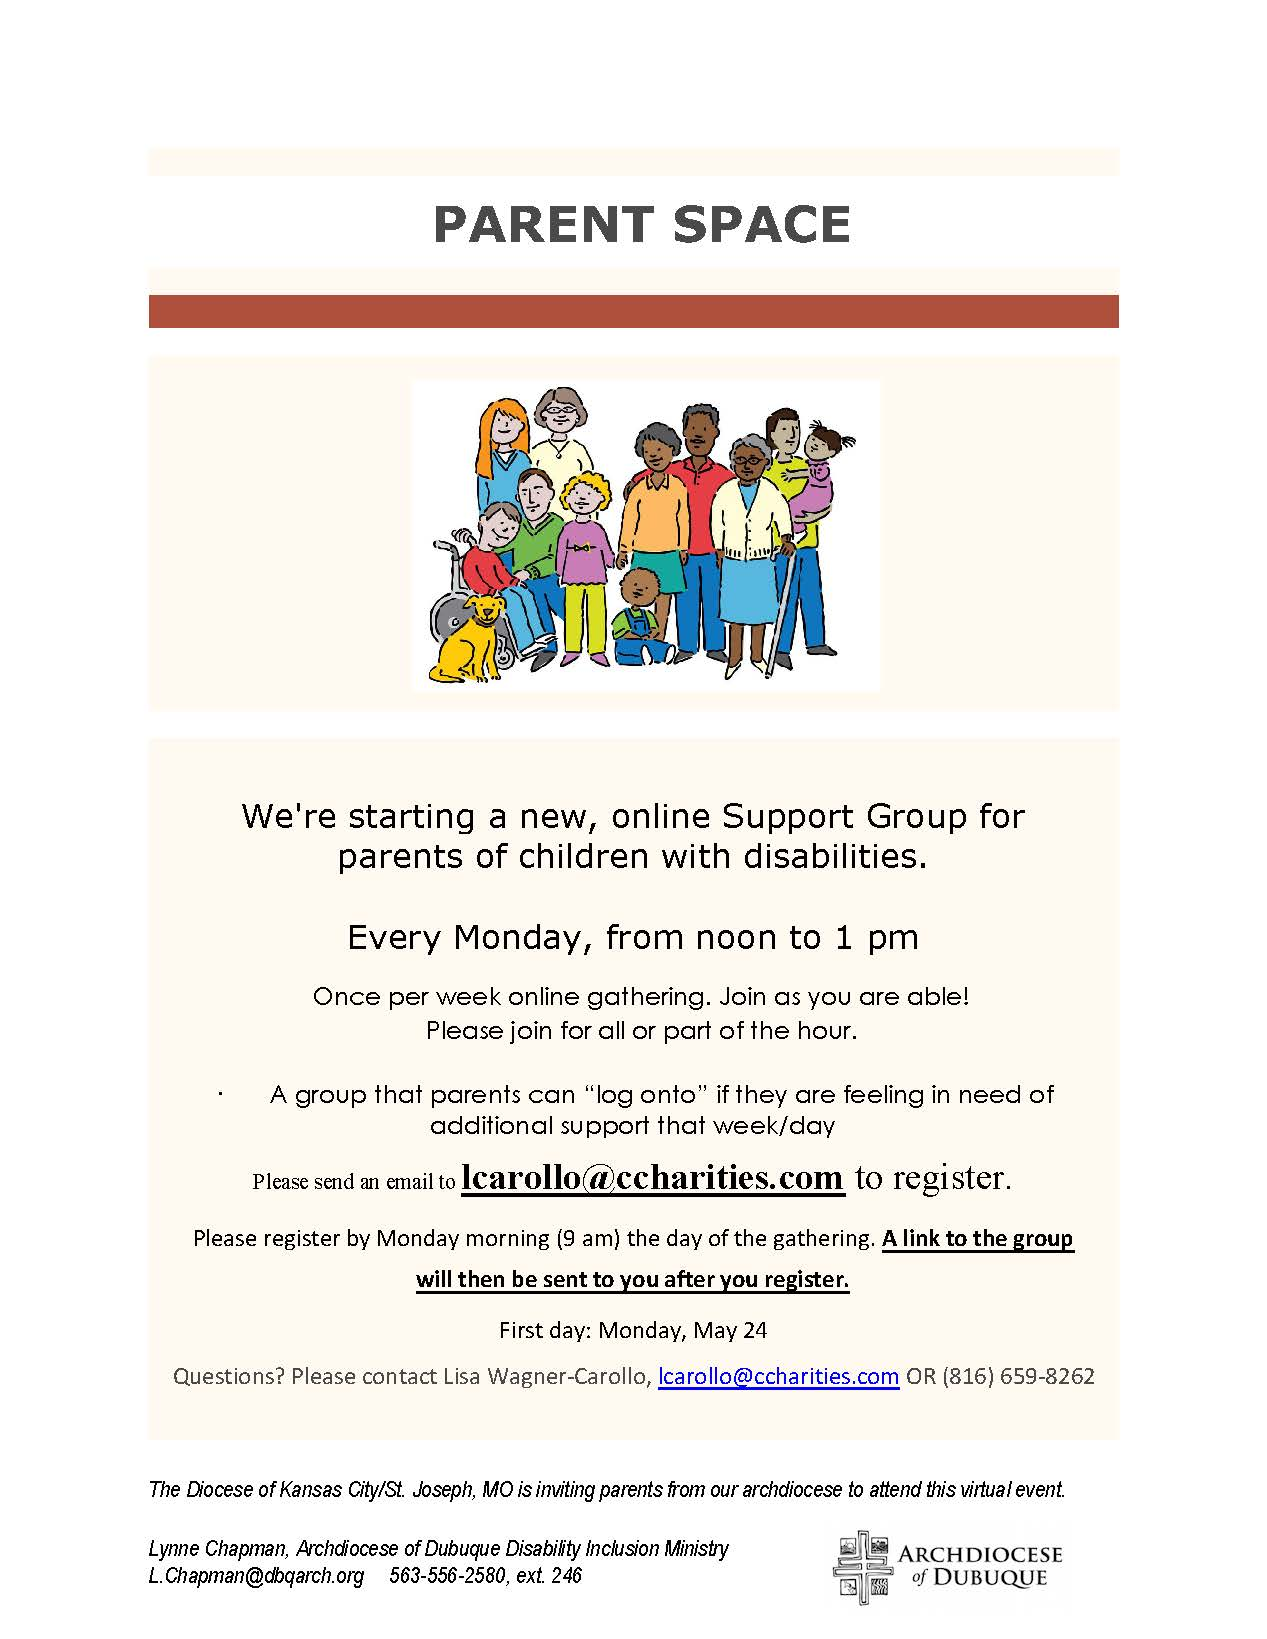 The Diocese of Kansas City/St. Joseph, MO is offering a weekly online support group for parents of children with disabilities, and has invited neighboring dioceses in the Midwest to join in.   Every Monday from Noon-1:00 PM, parents are invited to gather online. To receive a link to join the meeting, parents should email Lisa Wagner-Carollo at LCarollo@ccharities.com.   Please pass this message on to any parents who might be in need of support.